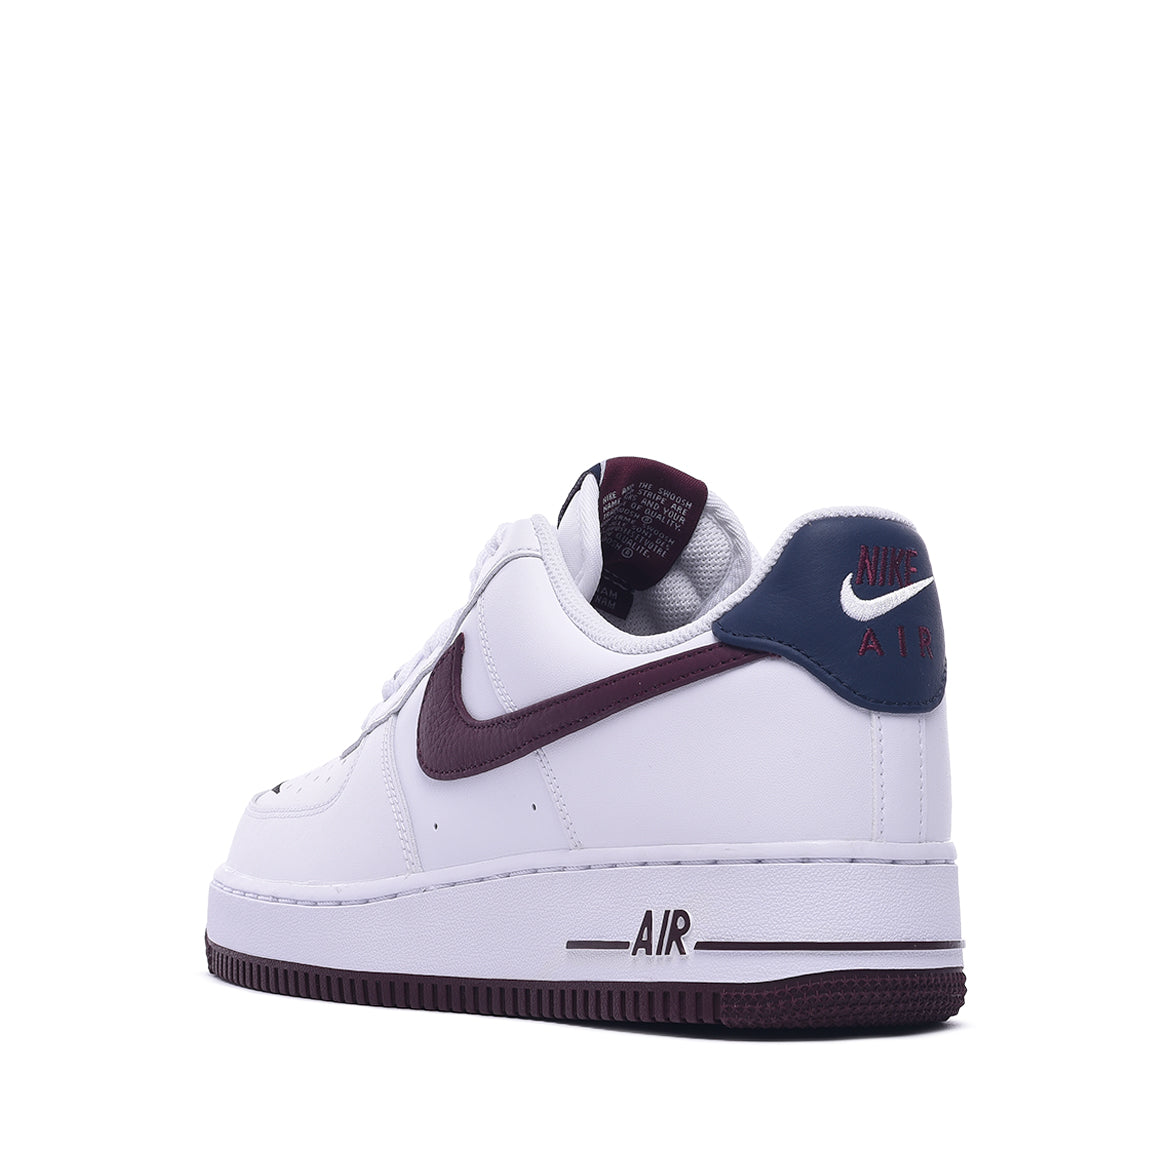 "AIR FORCE 1 `07 LV8 4 ""SWOOSH PACK"" - WHITE / NIGHT MAROON / OBSIDIAN"